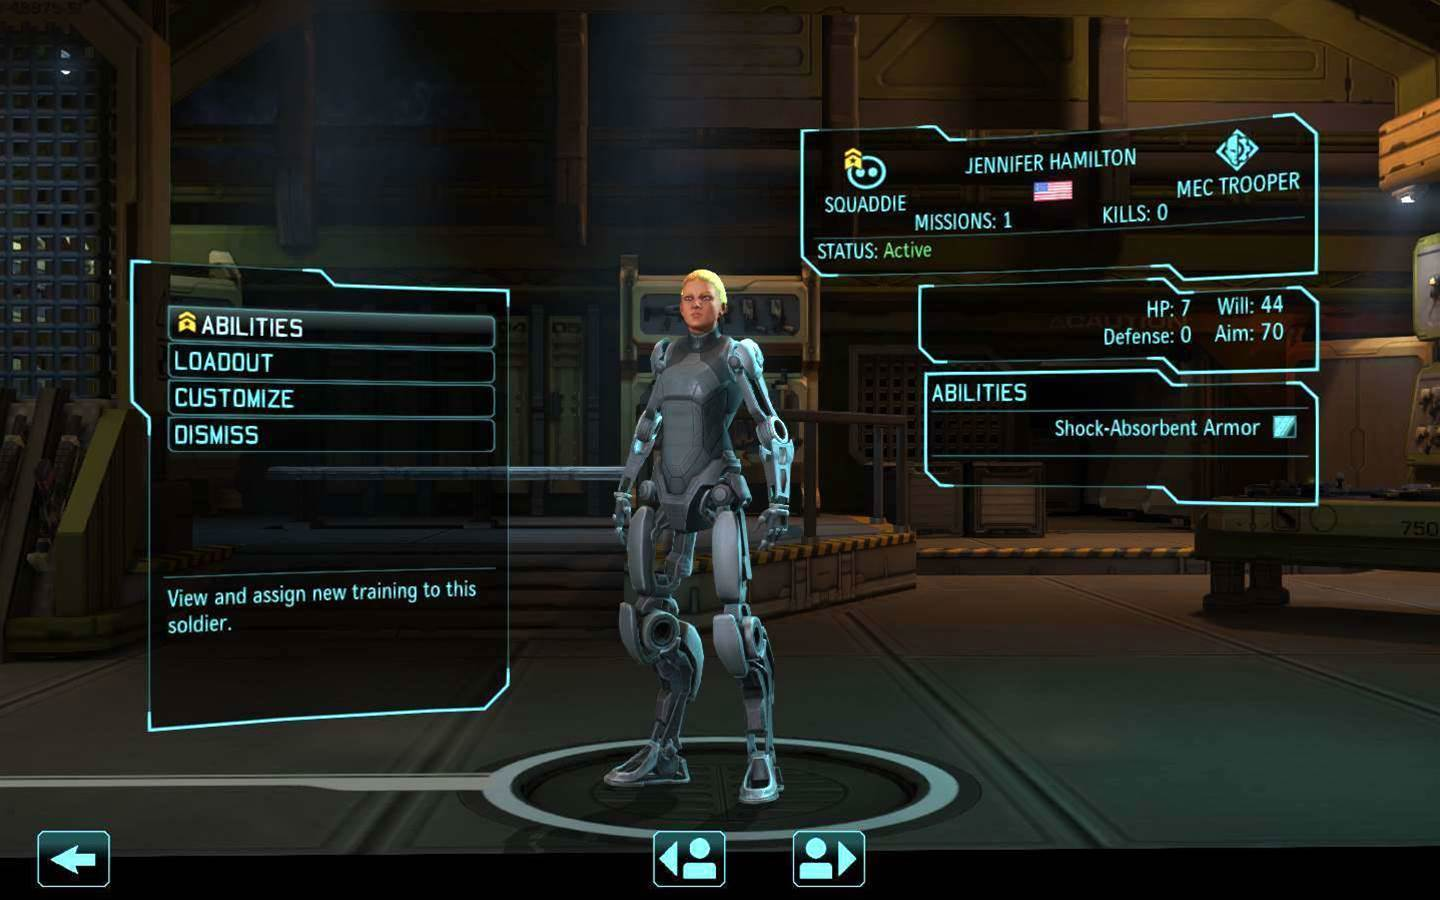 XCOM: Enemy Within announced at Gamescom